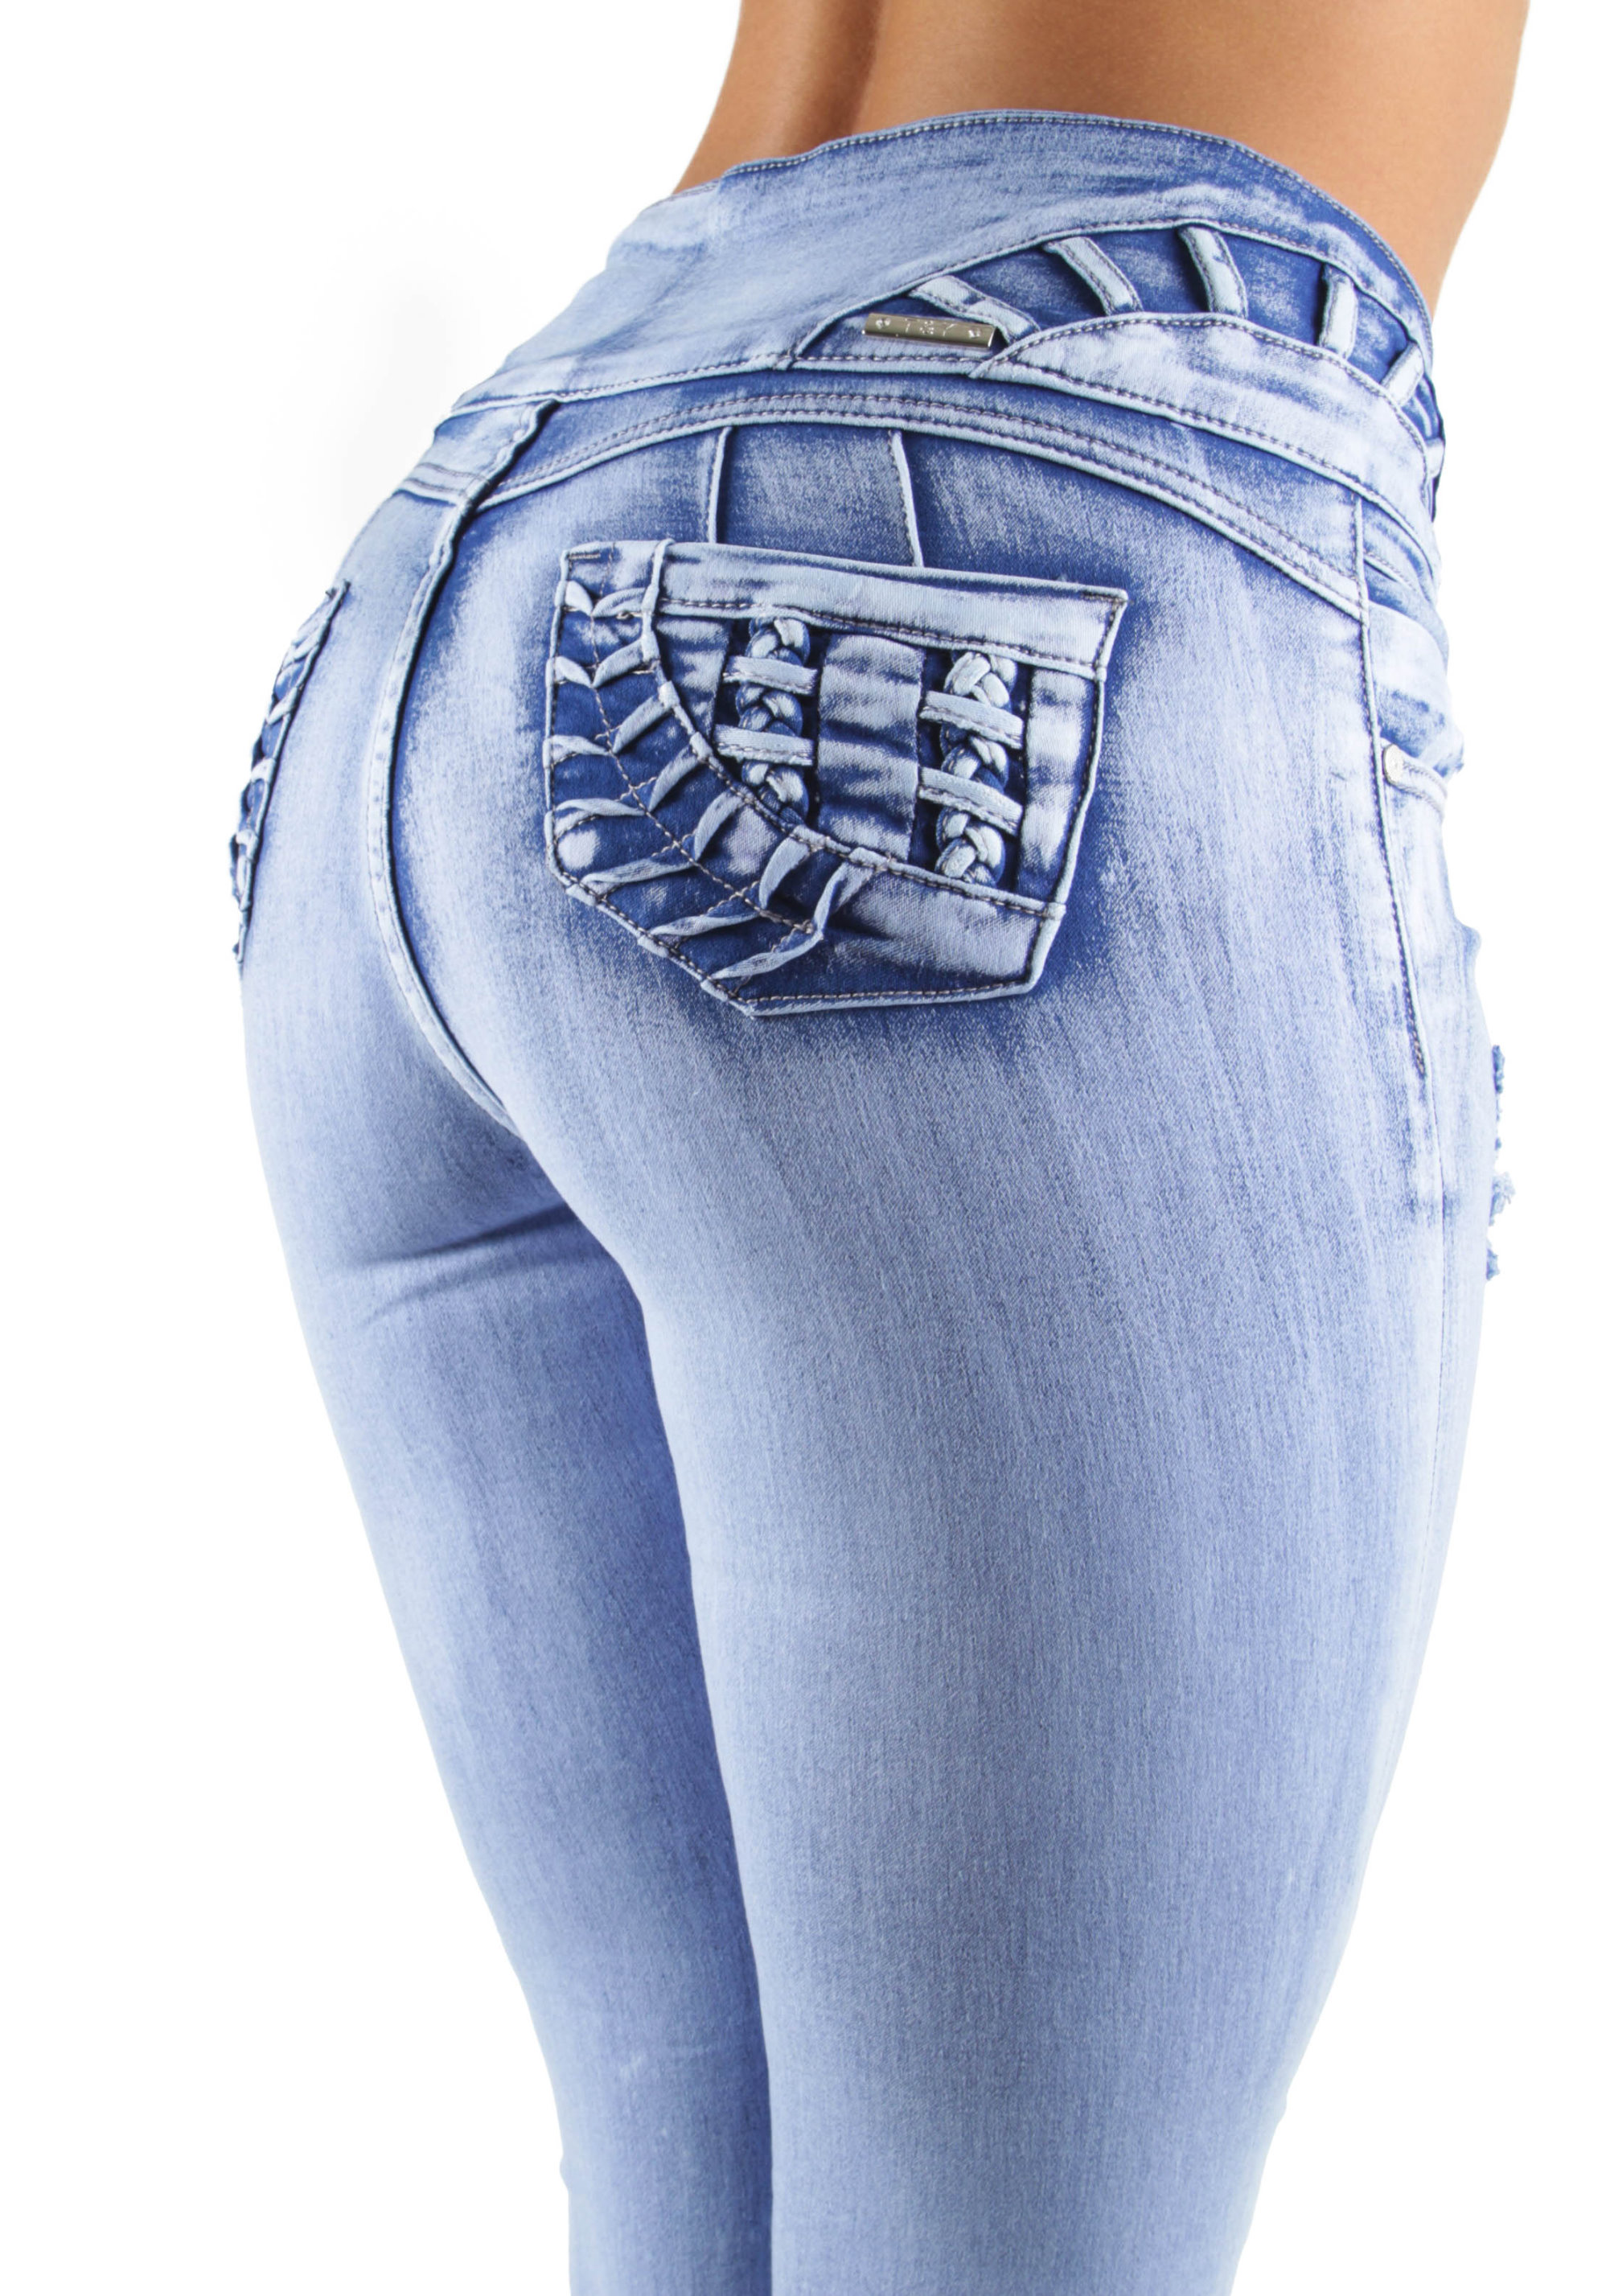 Details about  /Women/'s Juniors Butt Lift Push Up Mid Waist Ripped Distressed Skinny Jeans